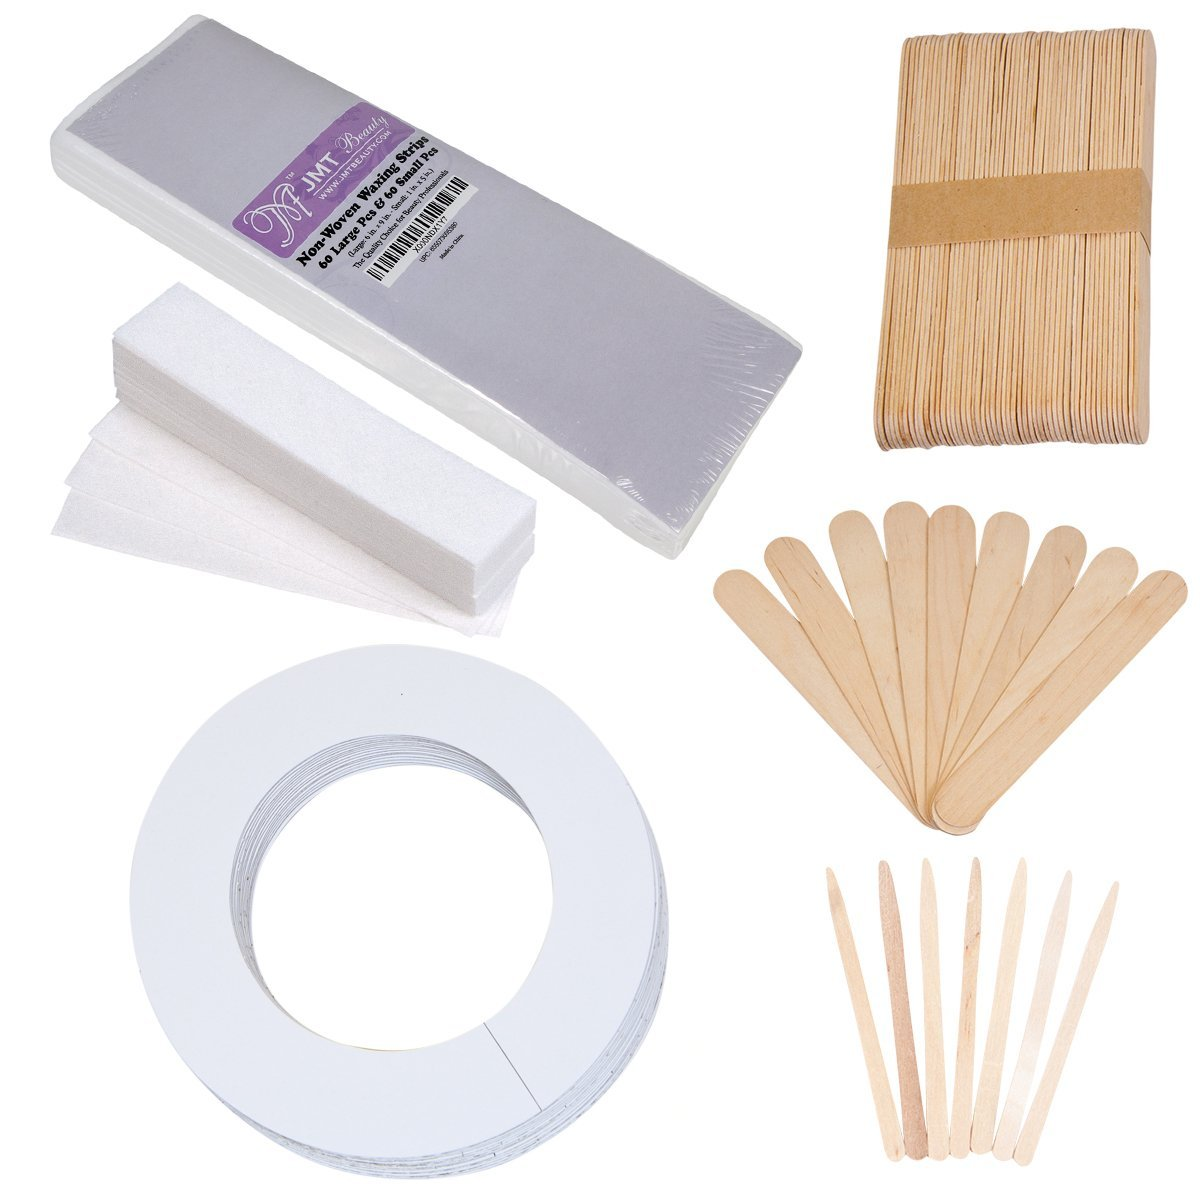 JMT Assorted Waxing Strips Kit - 60 Large 60 Small Strips and Accessories